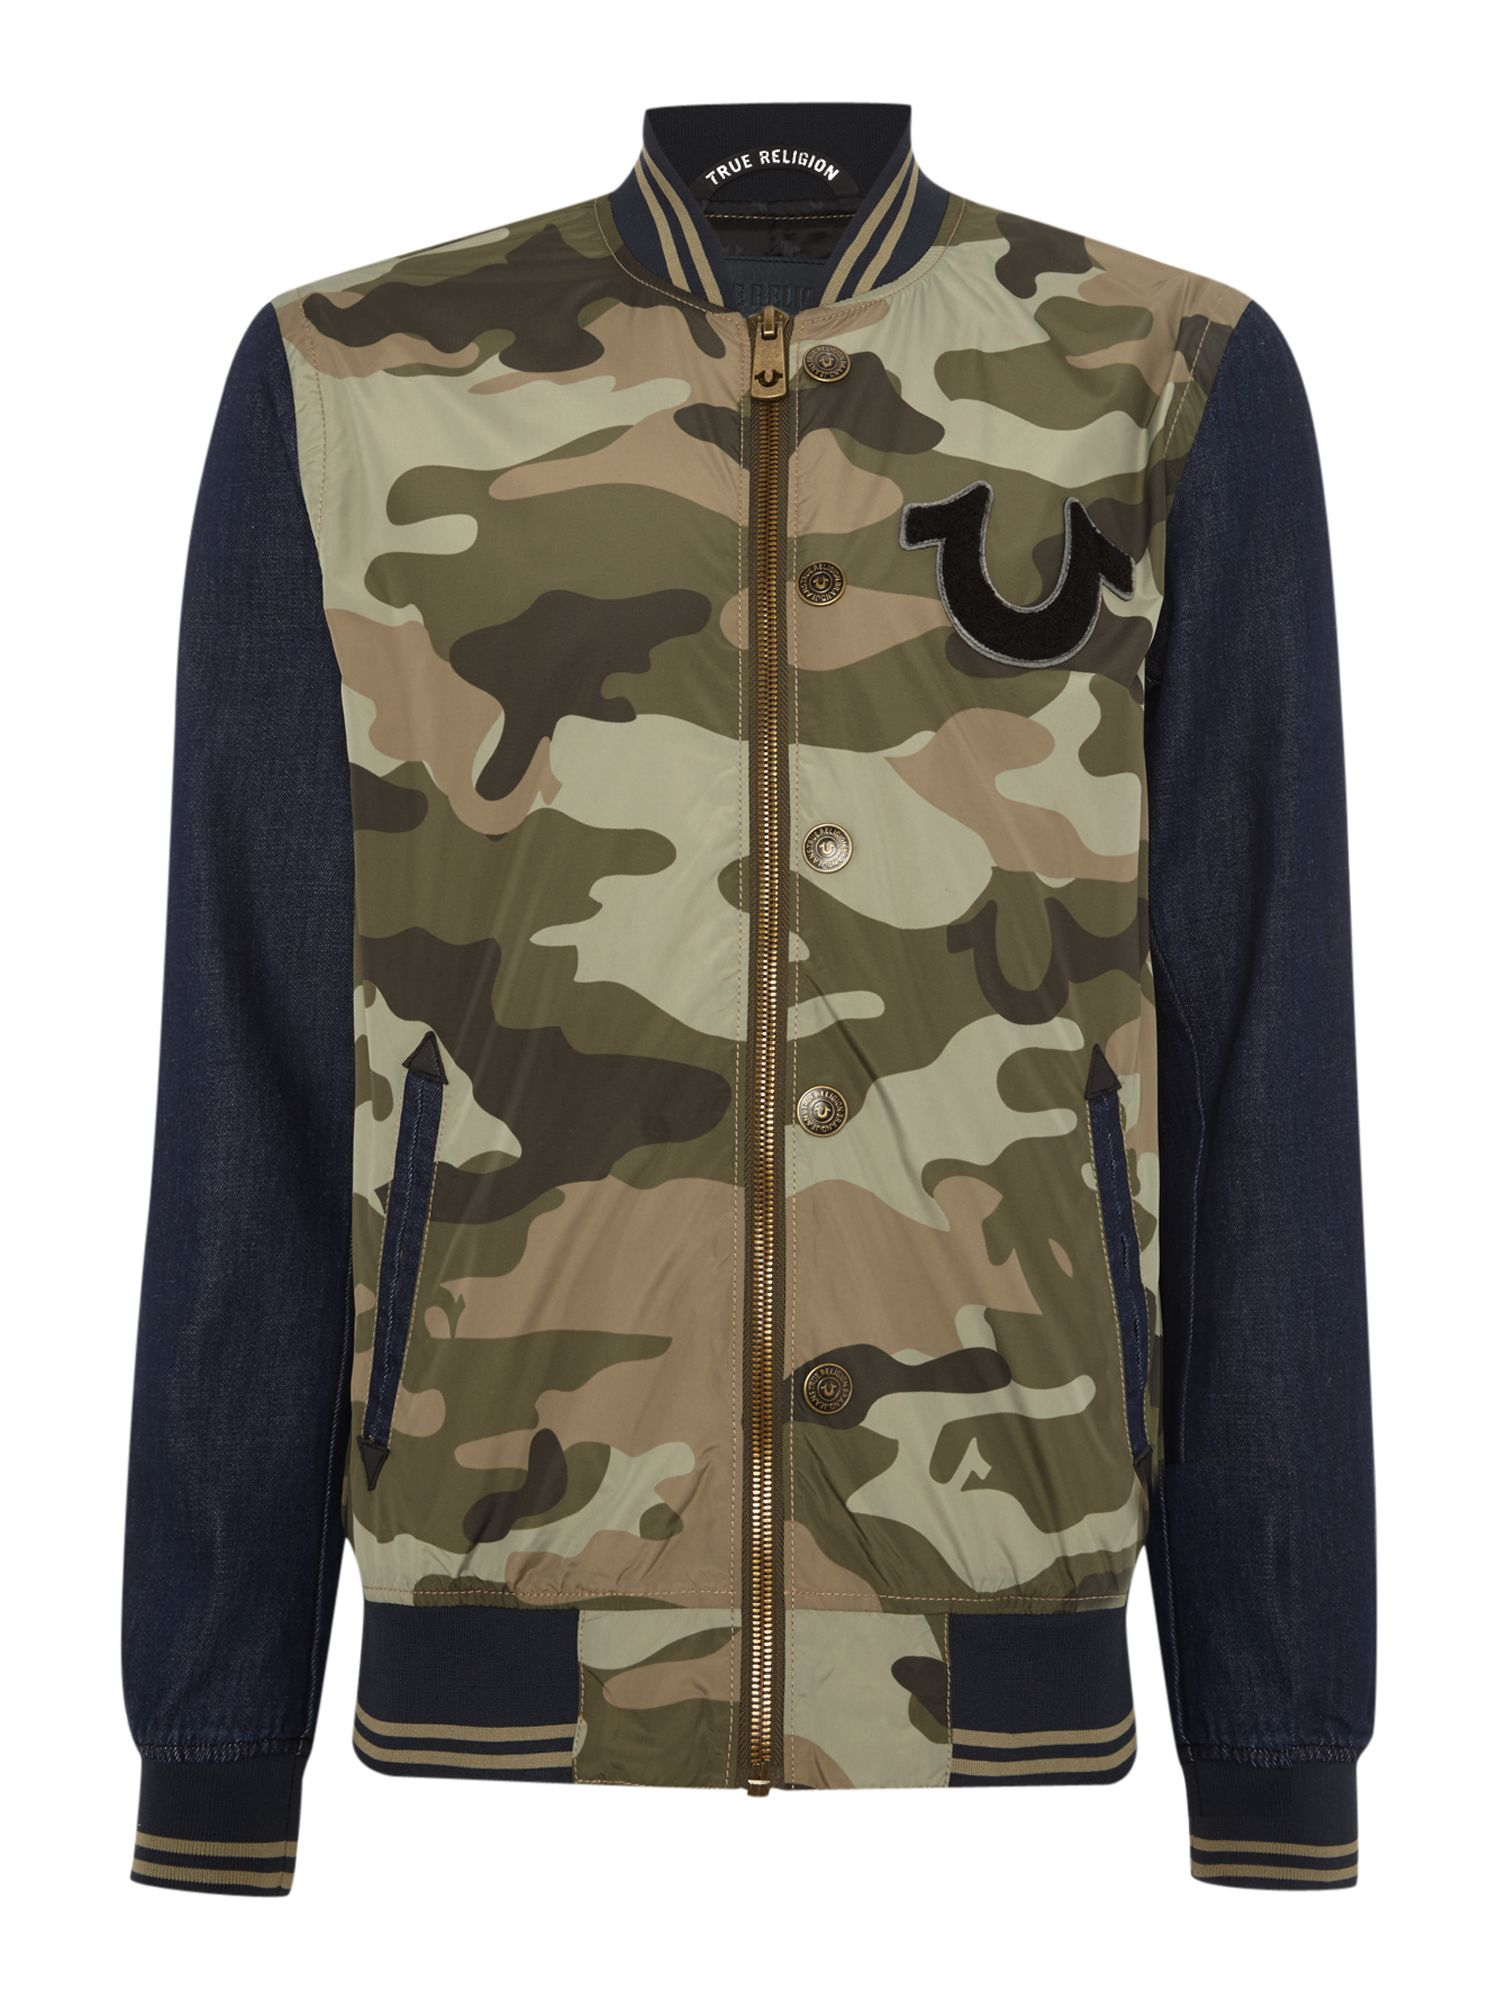 true religion regular fit collegiate camo denim jacket in multicolor for men lyst. Black Bedroom Furniture Sets. Home Design Ideas